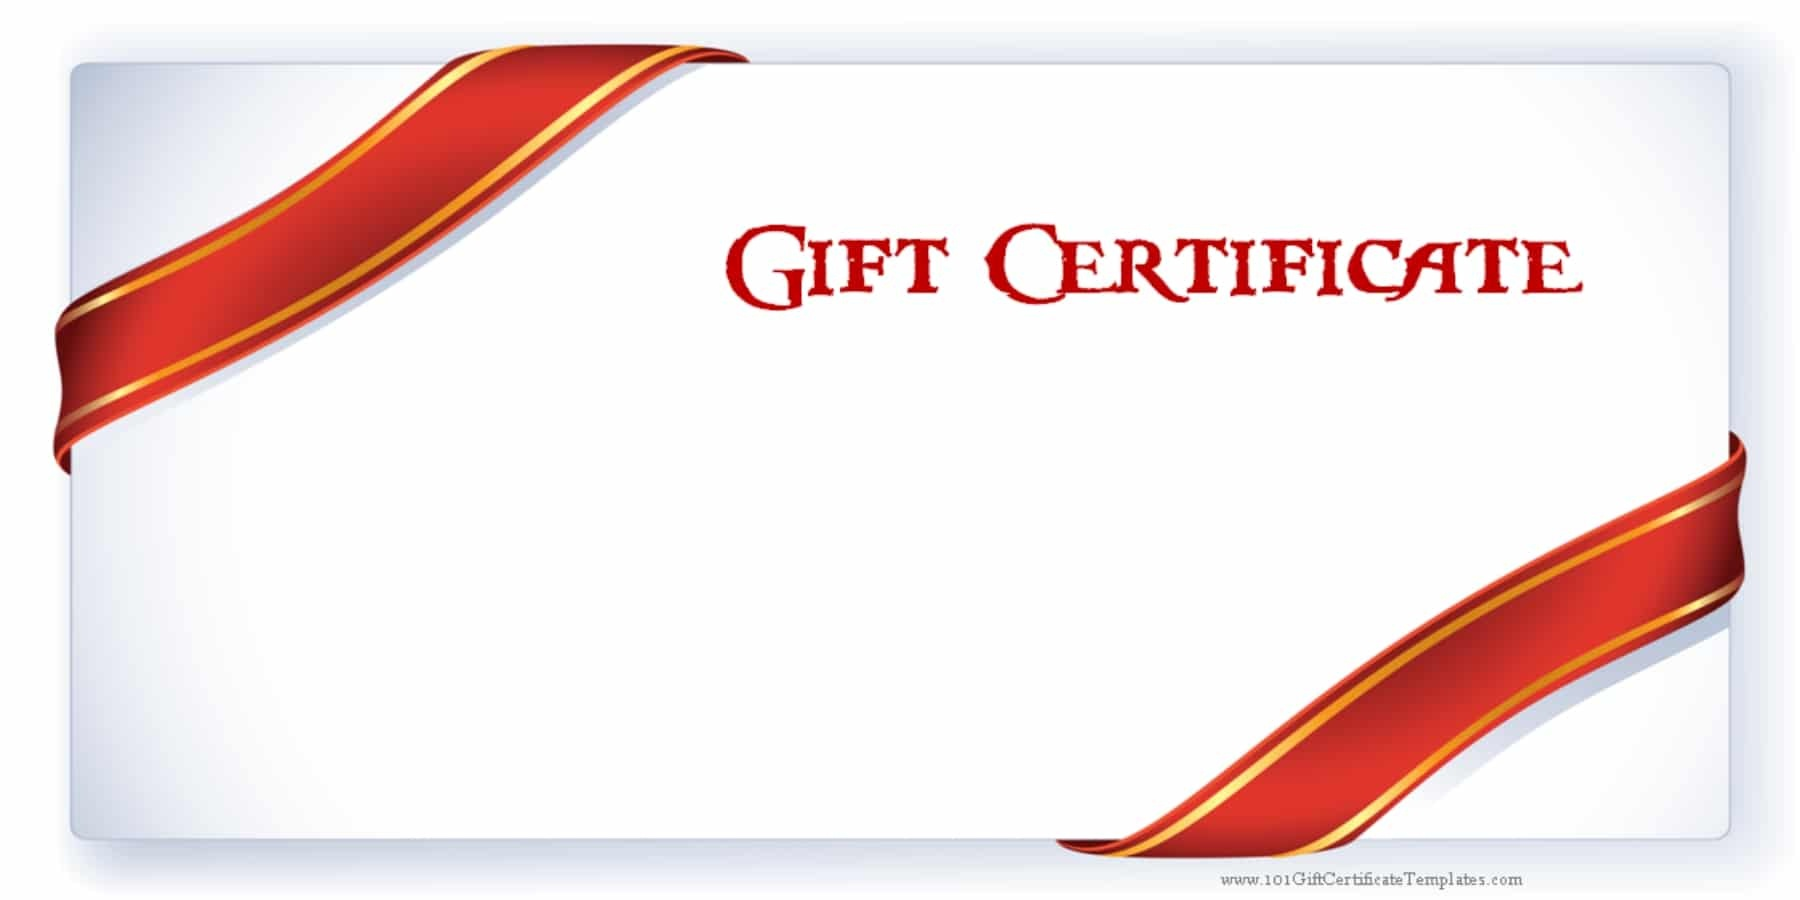 Printable Gift Certificate Templates - Free Printable Gift Coupons